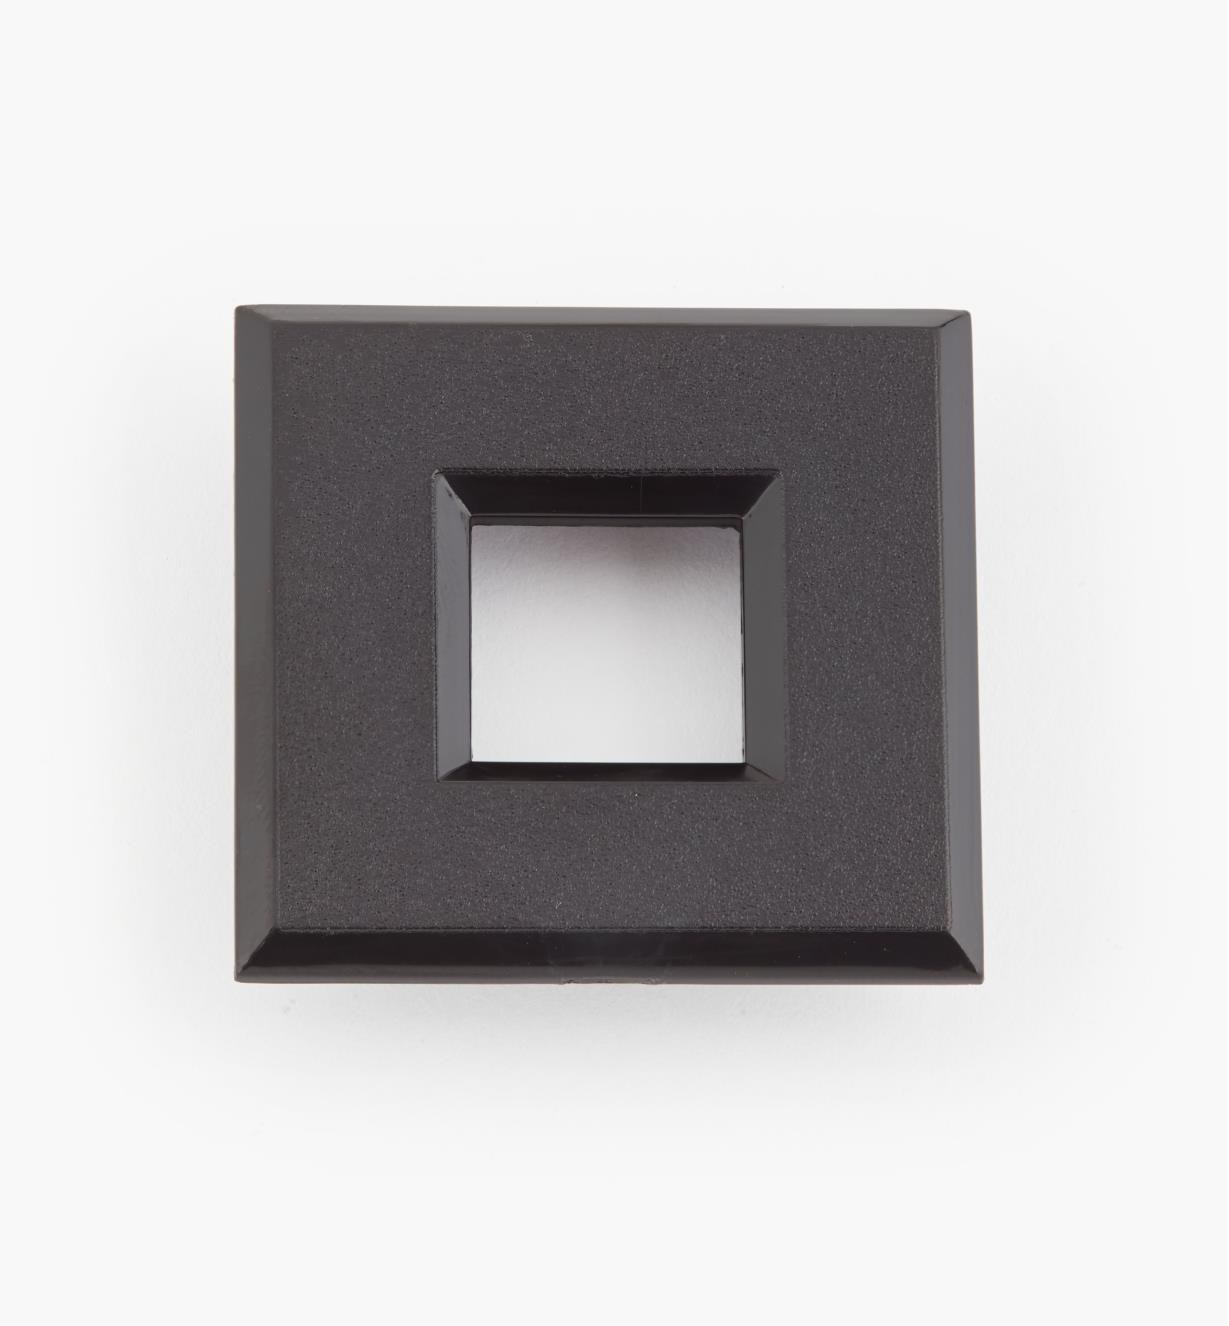 "00U4366 - 1 9/16"" Black Square Polycarbonate Trim Ring"